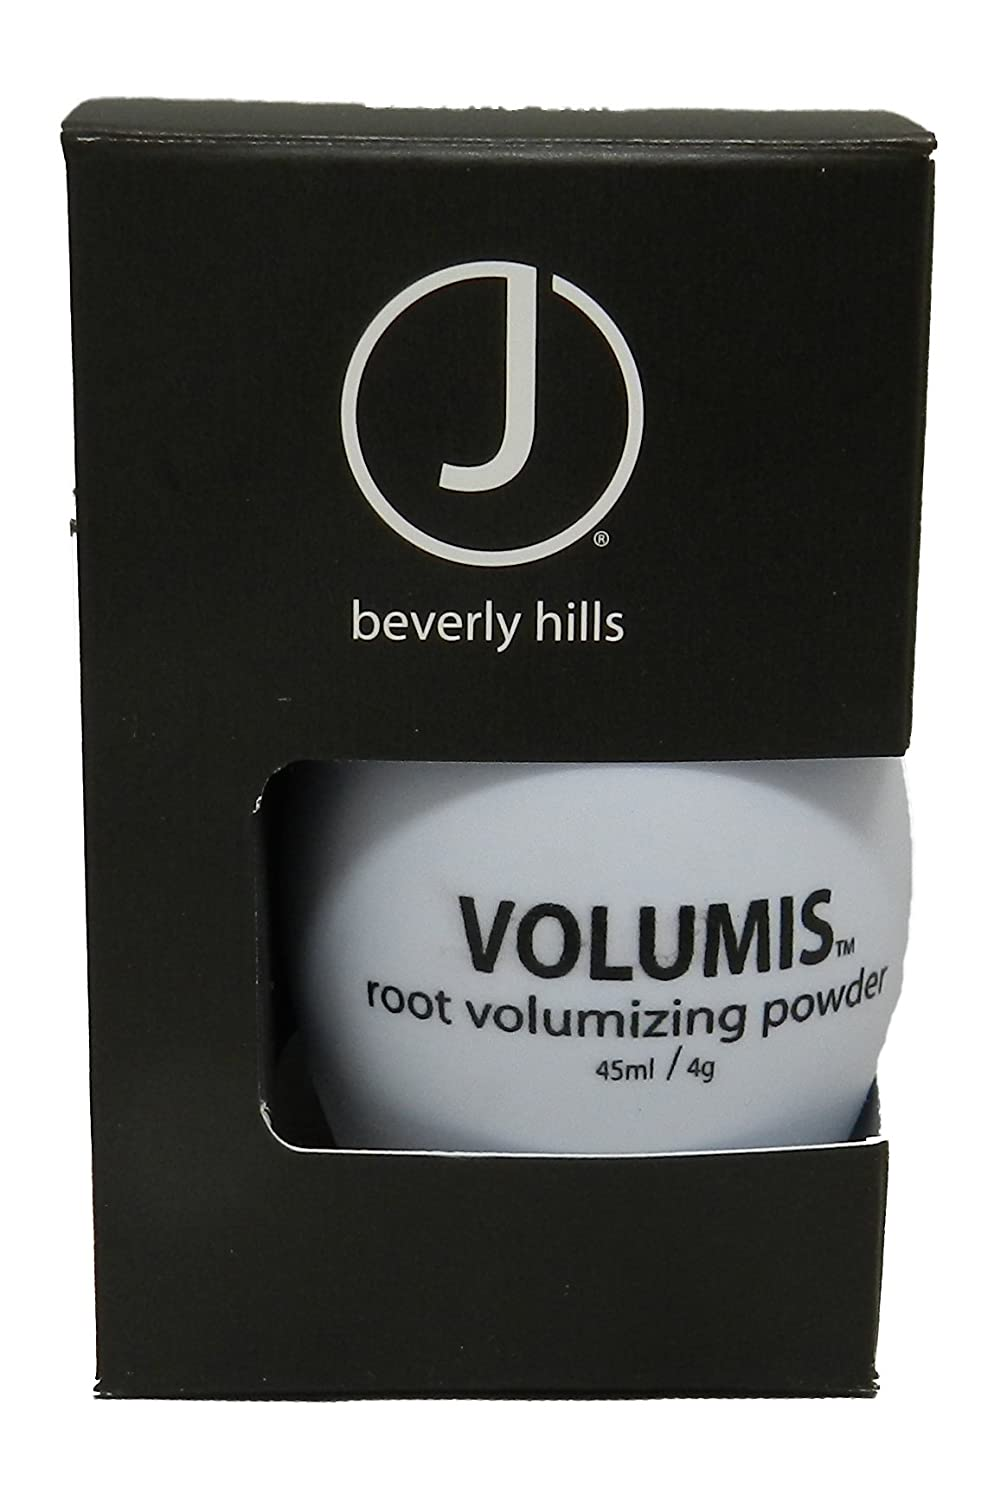 J Beverly Hills Volumis Root Volumizing Powder, 5g